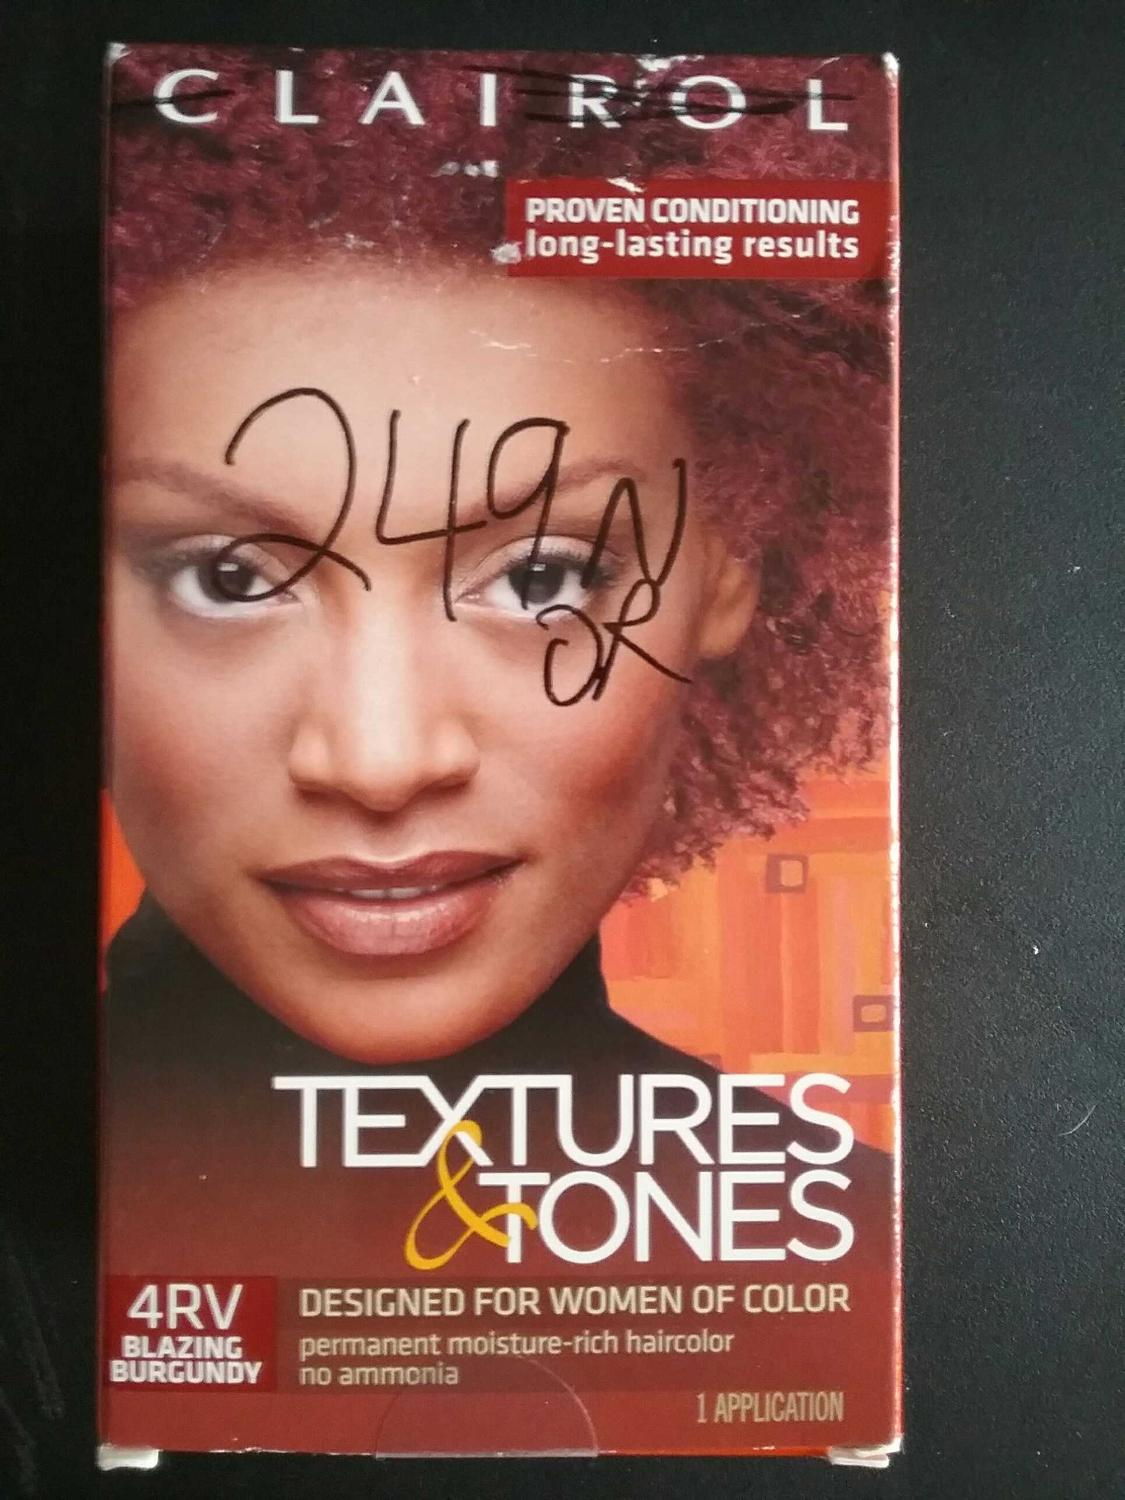 Best New Clairol Textures Tones Hair Color For Sale In Detroit